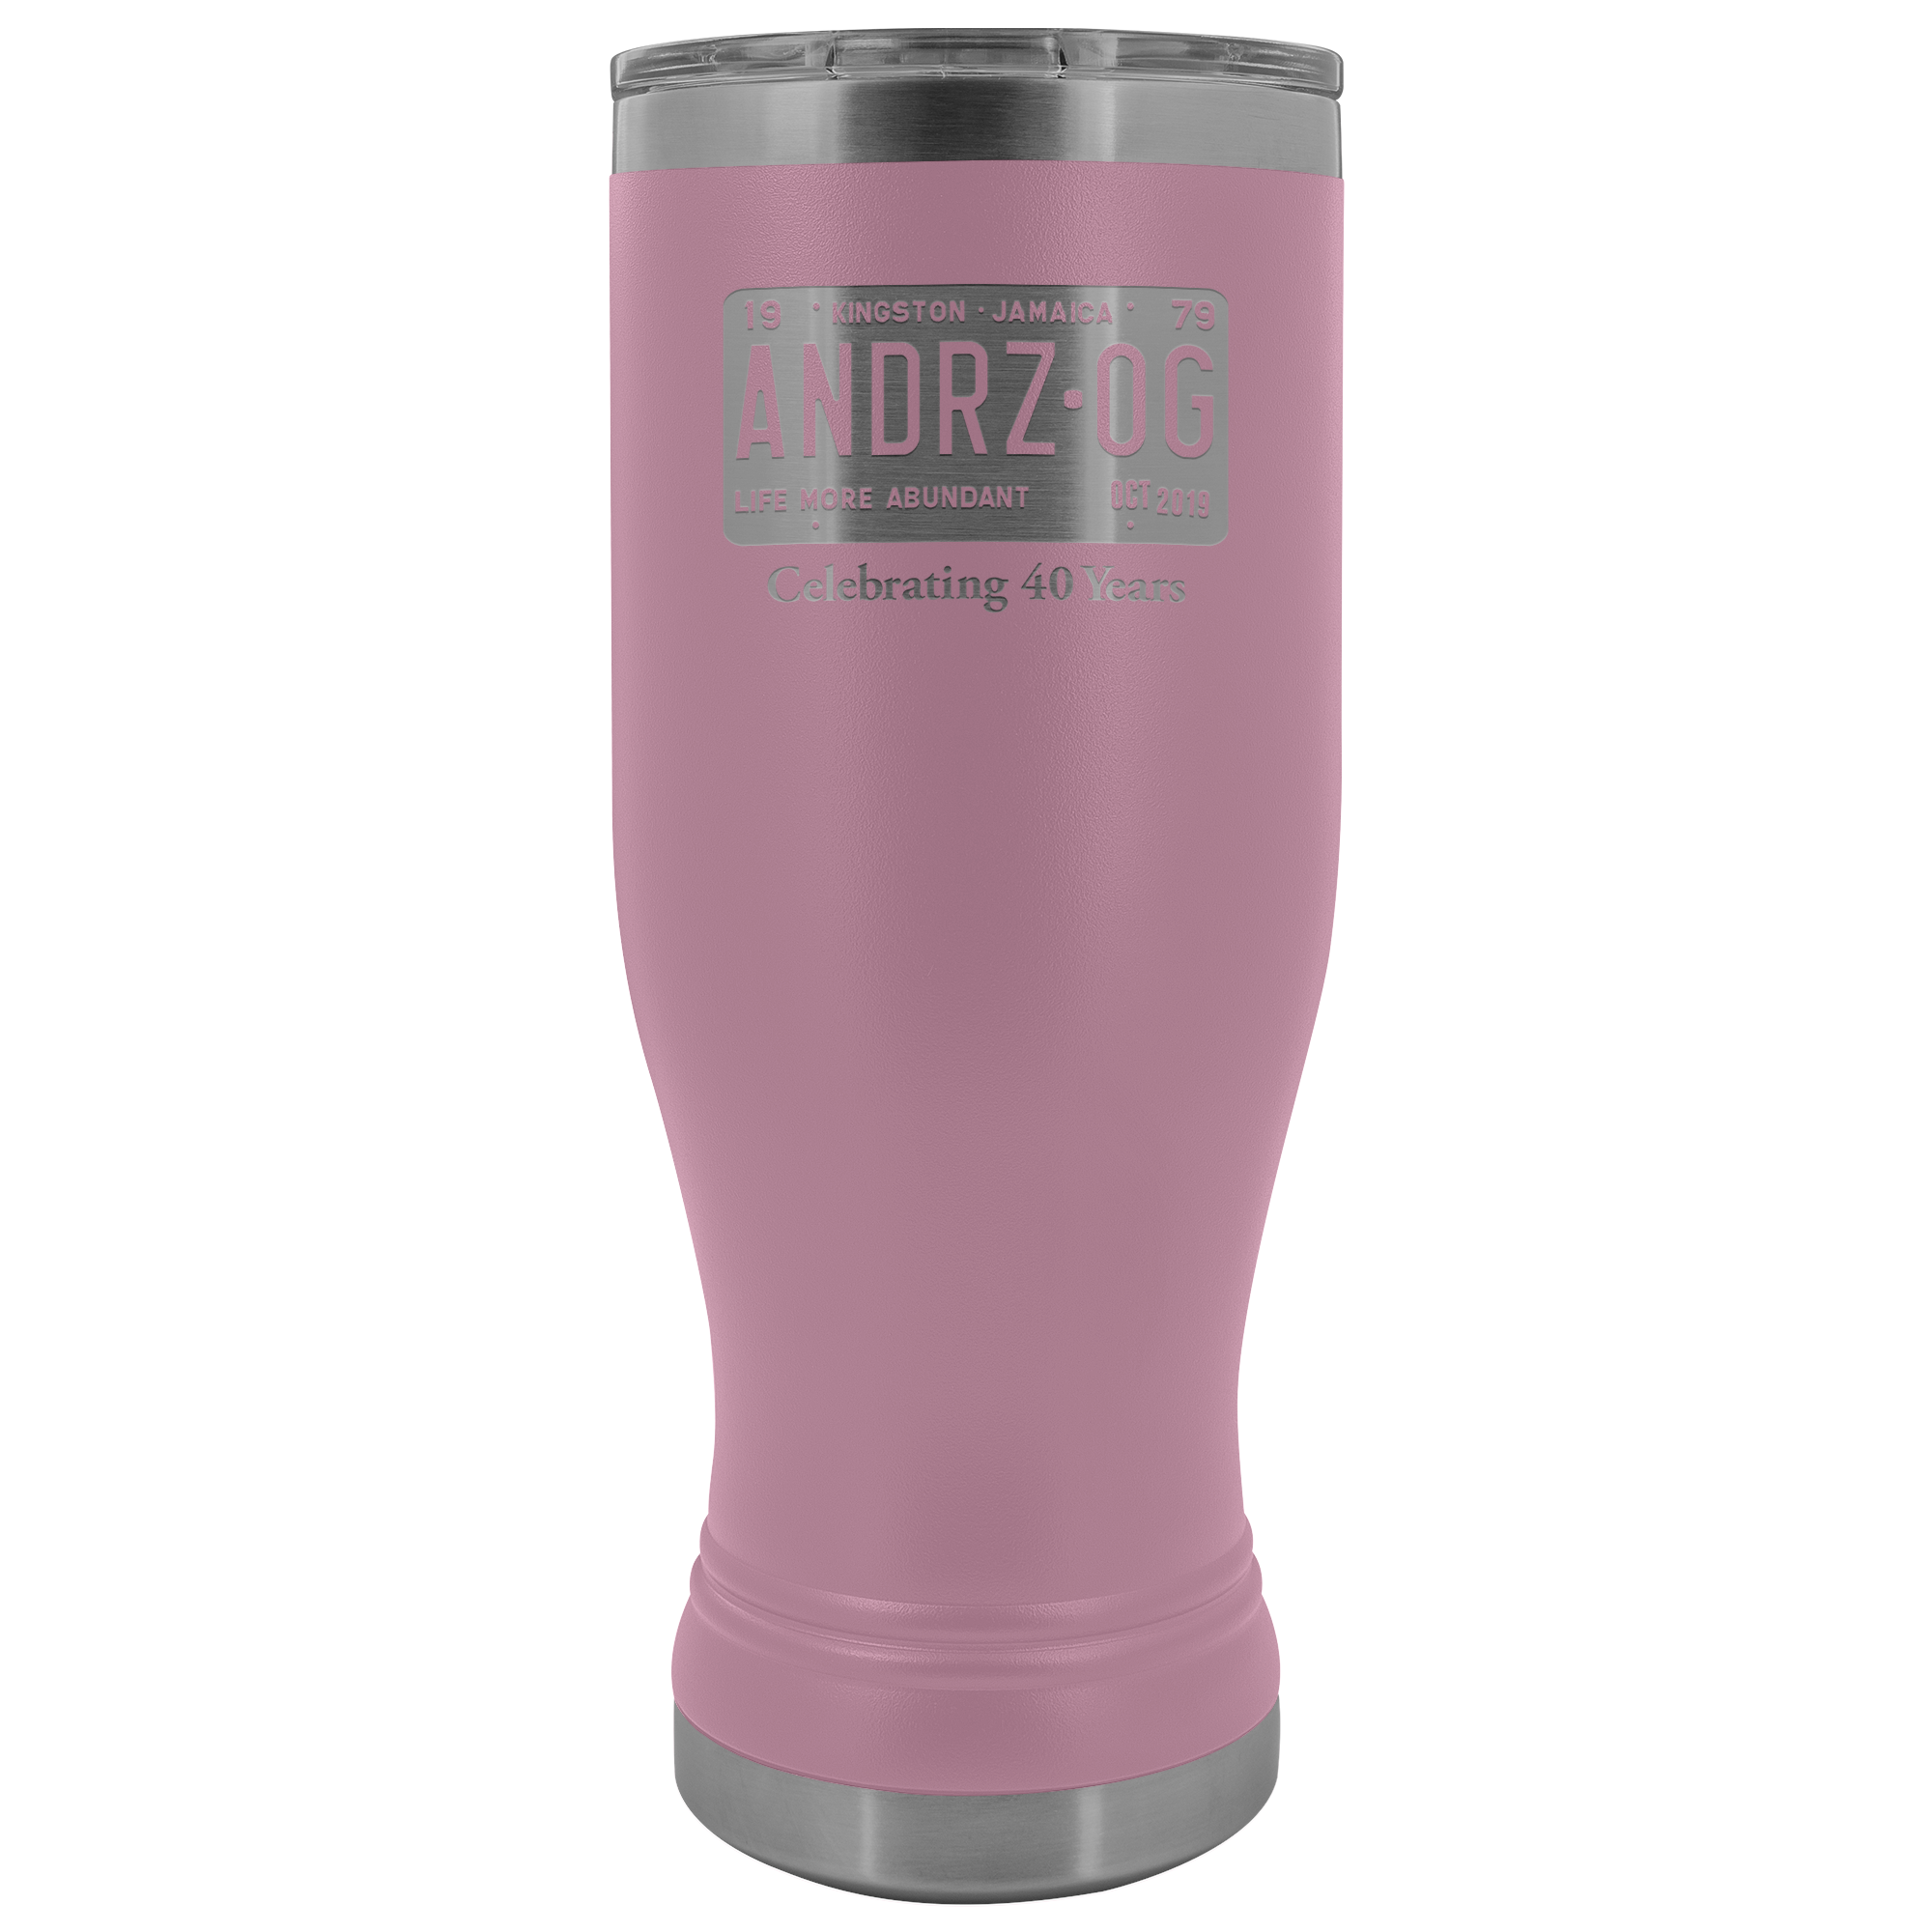 Andrz OG 2019 Reunion Laser-Etched BOHO Tumbler for Hot & Cold Beverages